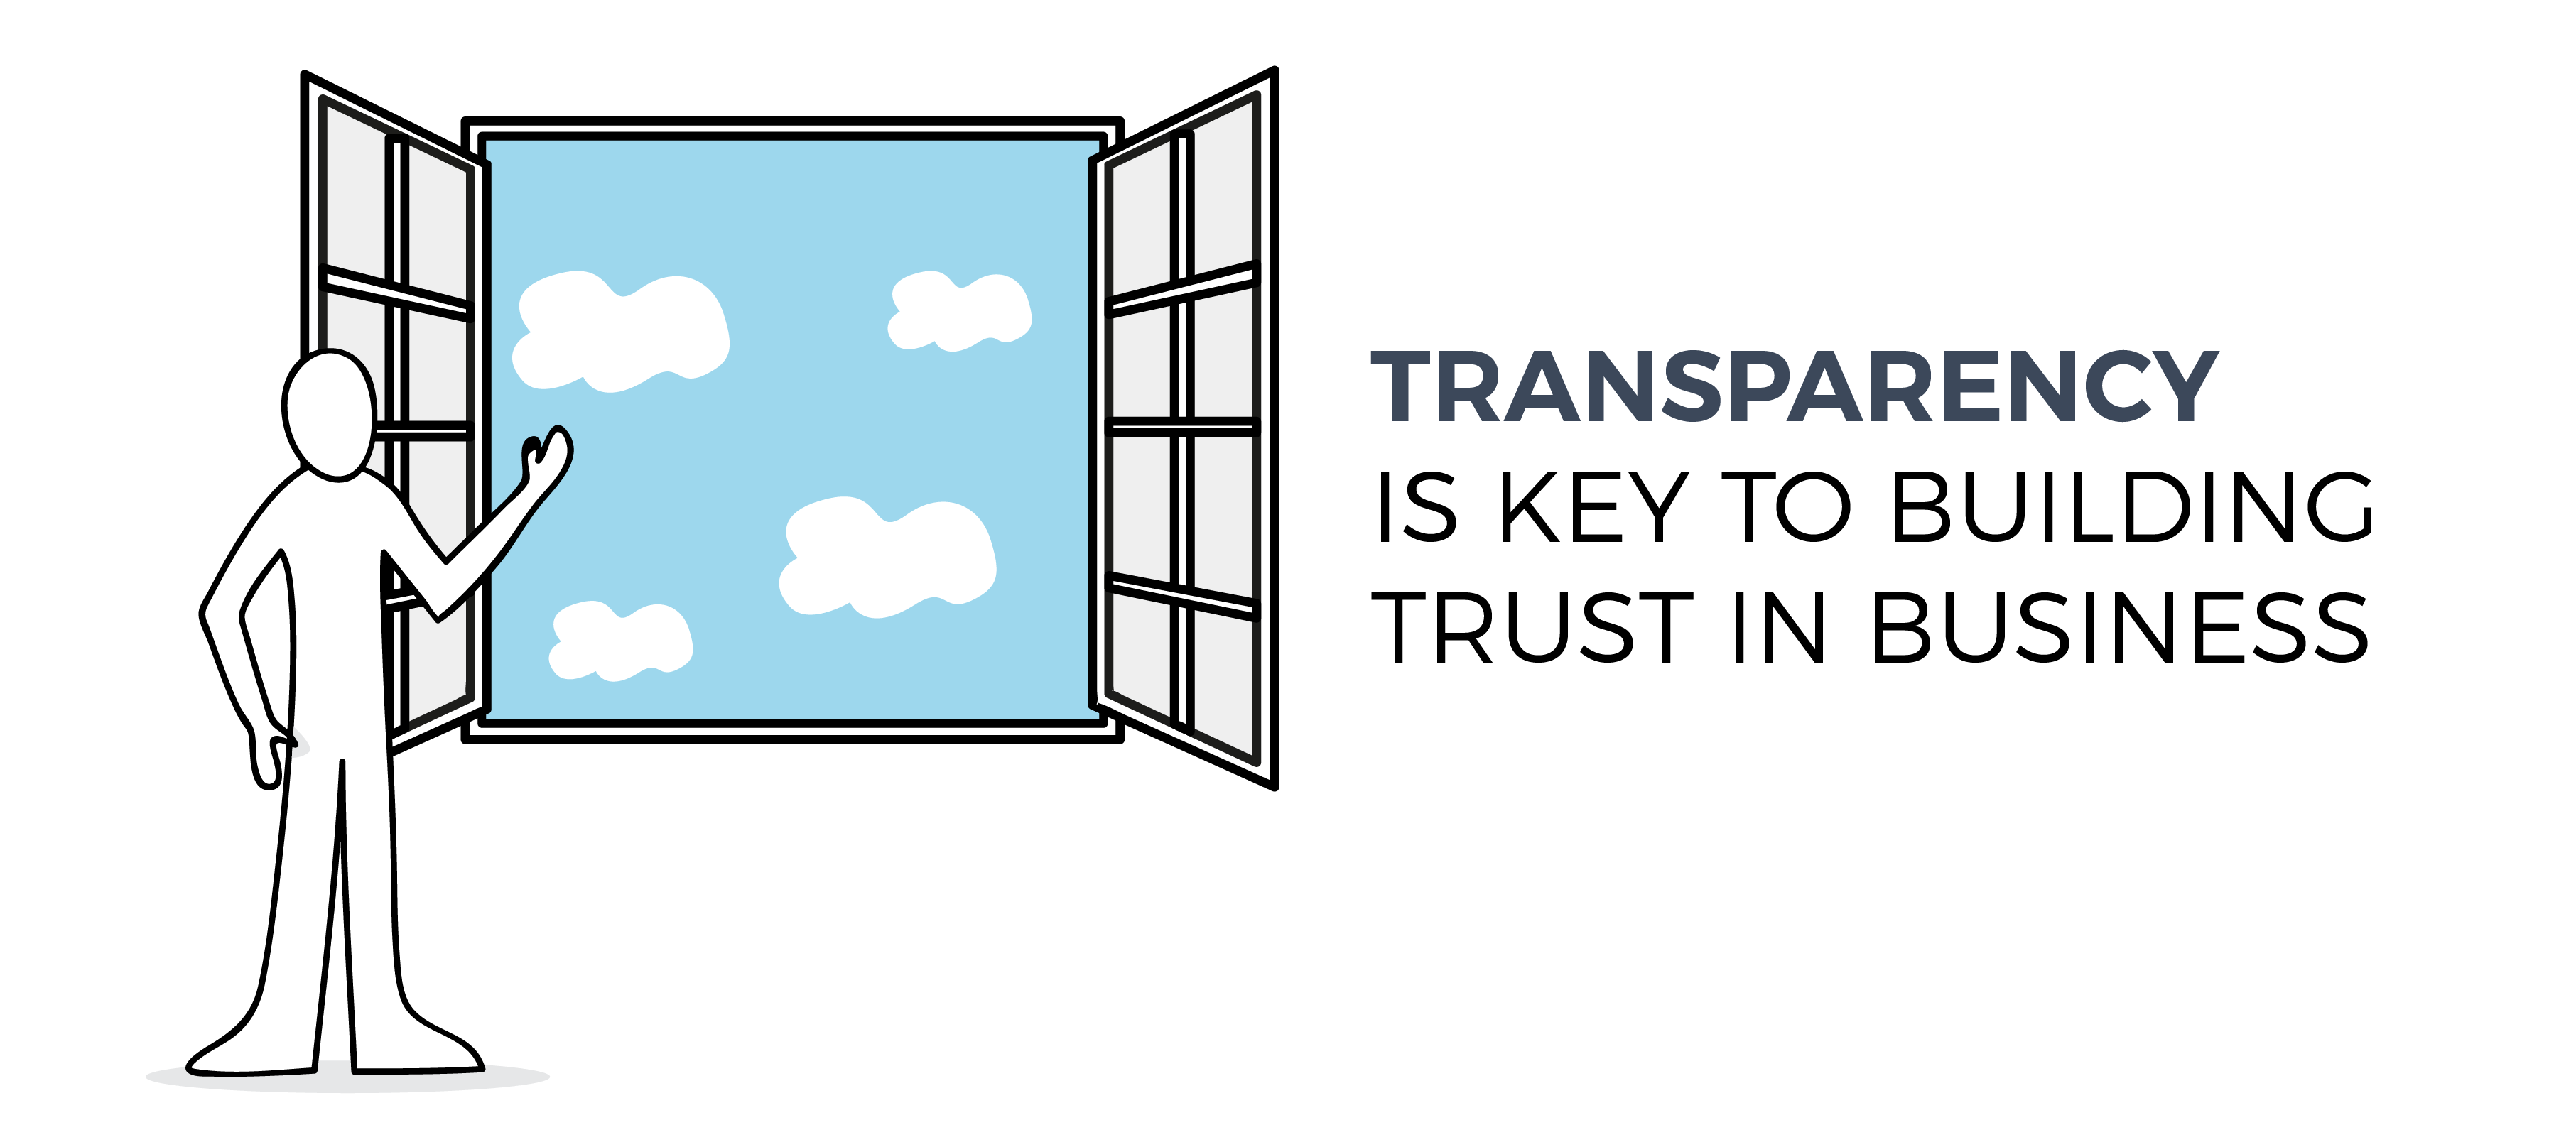 Transparency builds trust